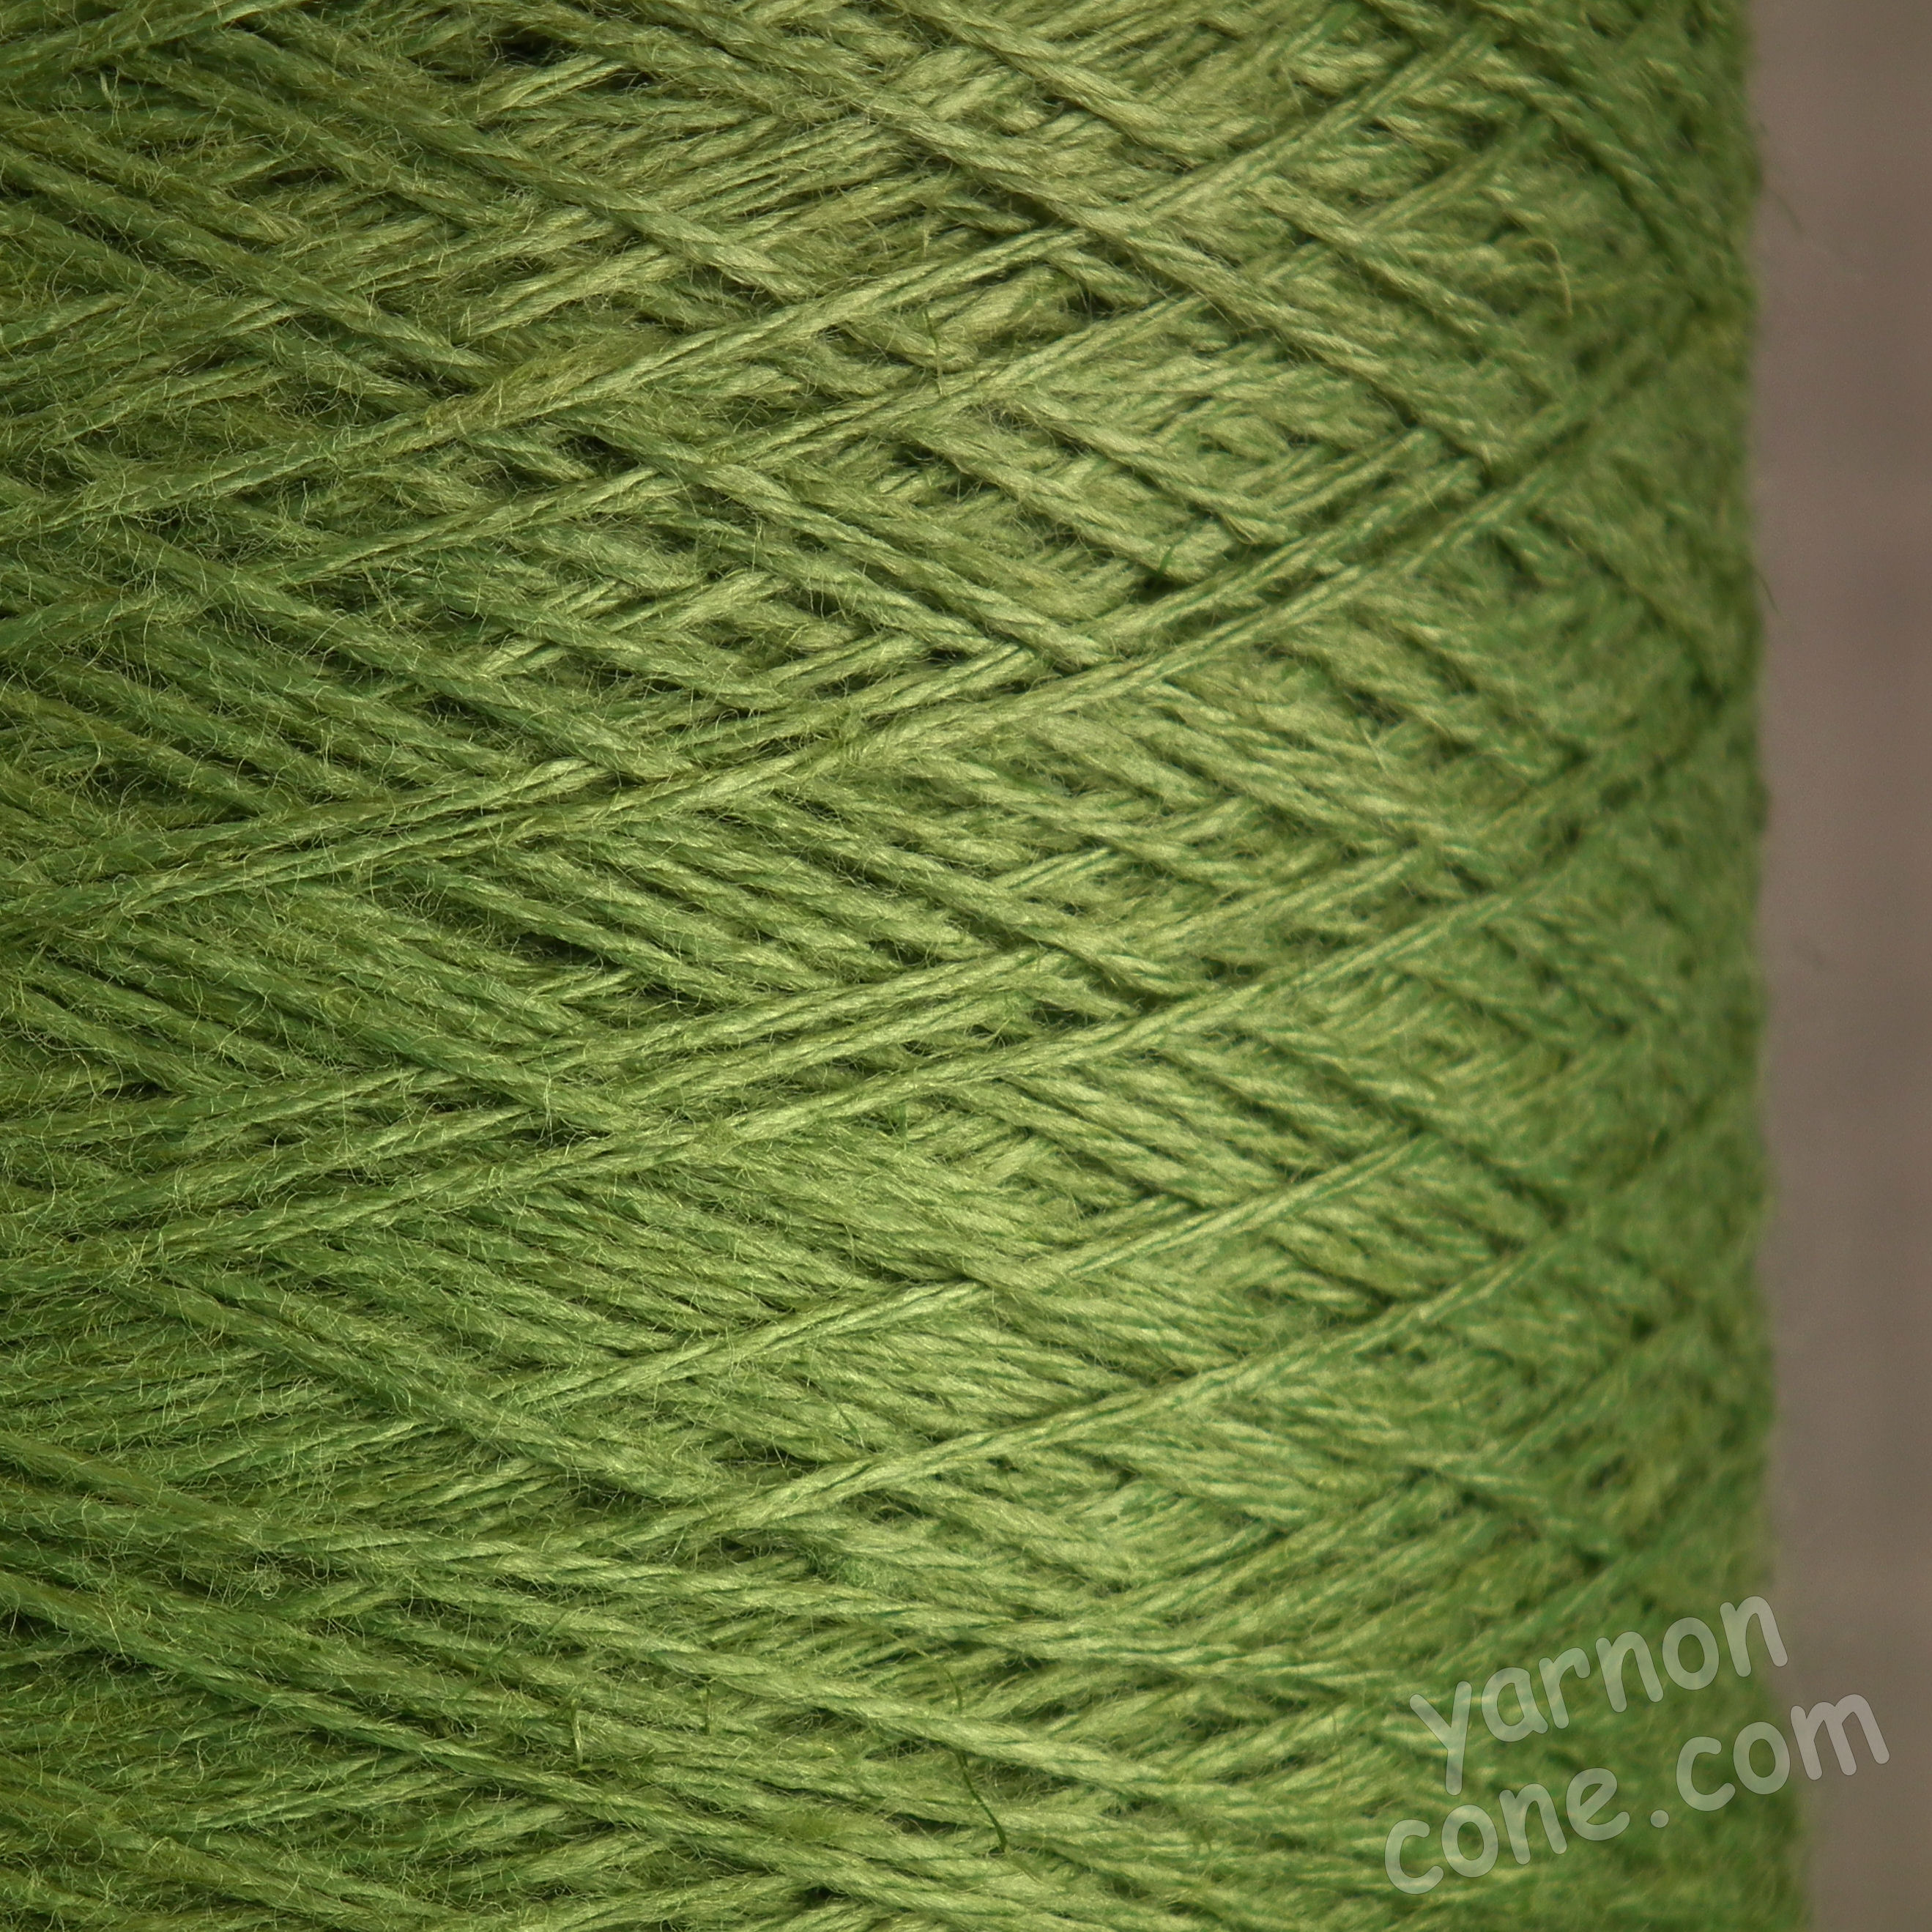 soft 4 ply viscose linen yarn on cone knitting weaving crochet green